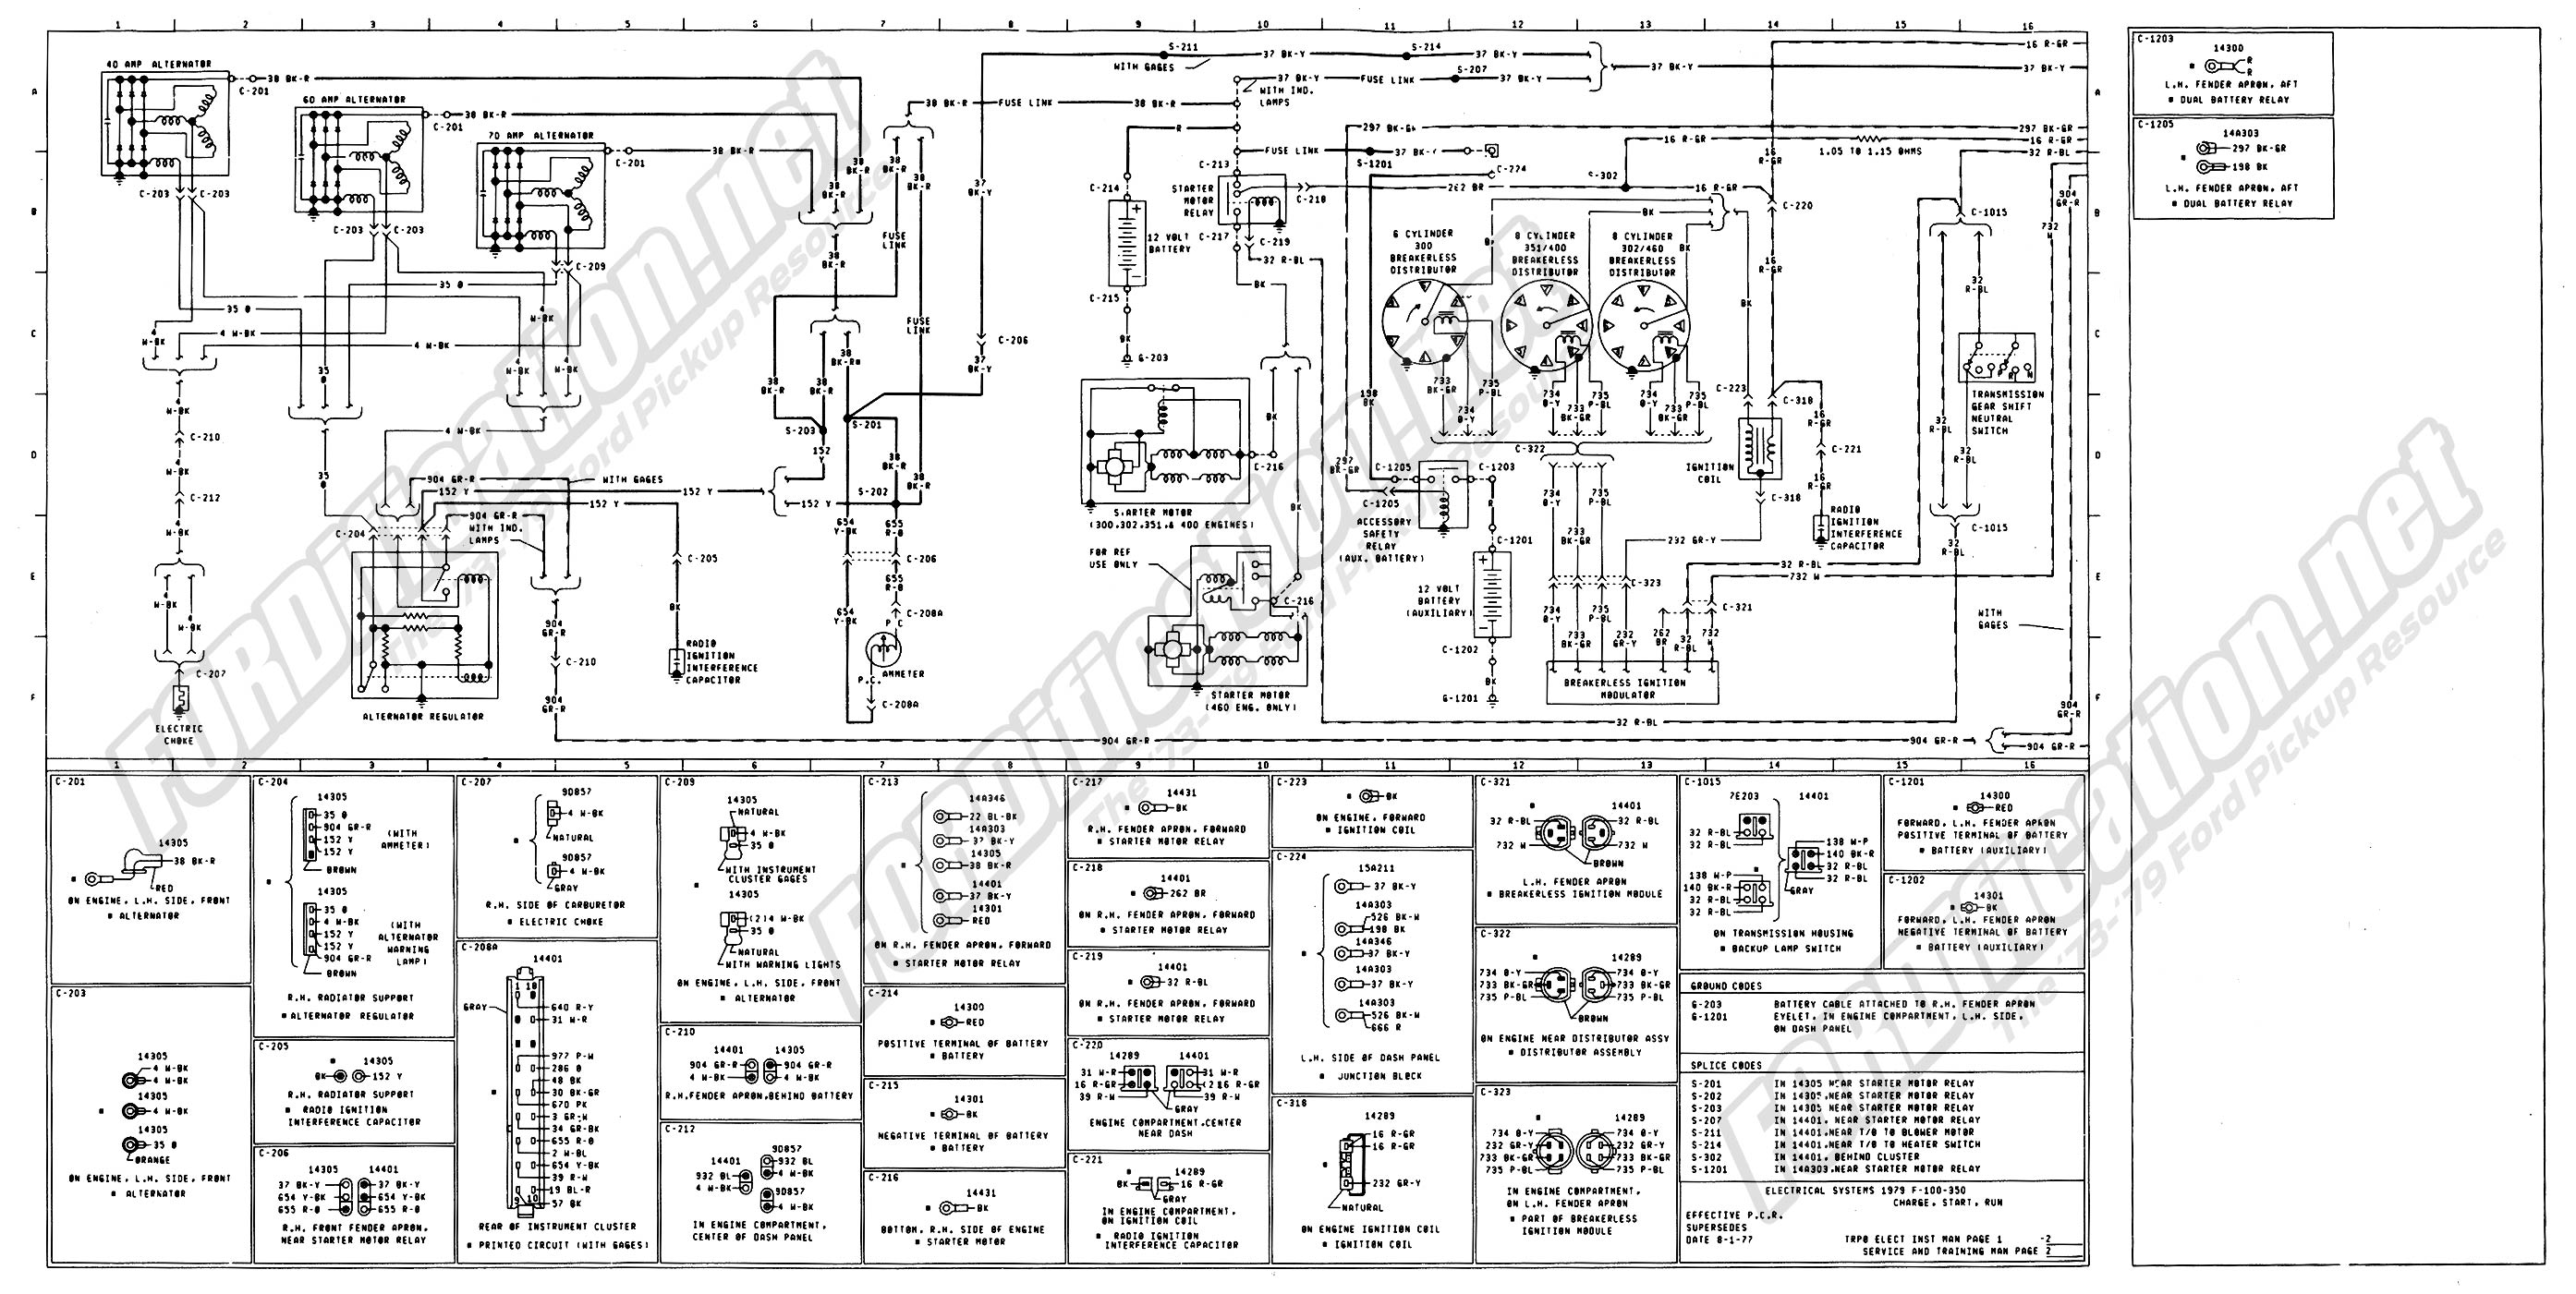 wiring_79master_2of9 1973 1979 ford truck wiring diagrams & schematics fordification net ford truck radio wiring diagram at crackthecode.co